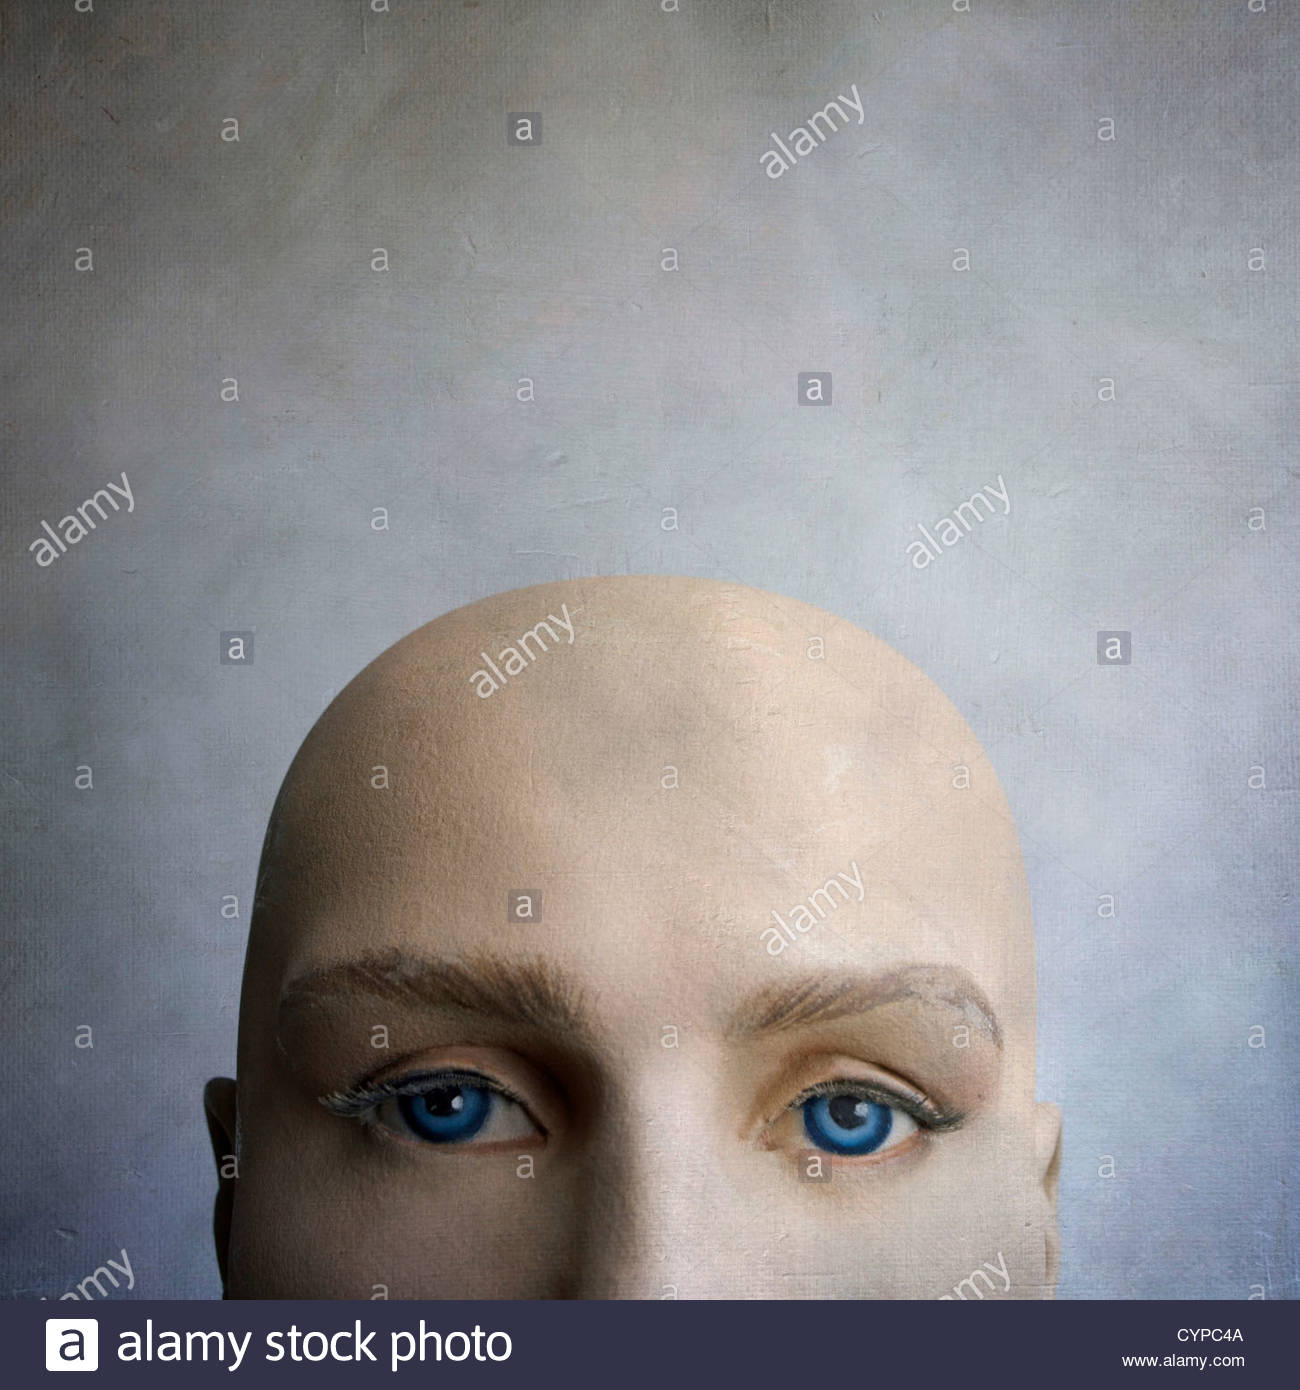 Male Mannequin faces - Stock Image